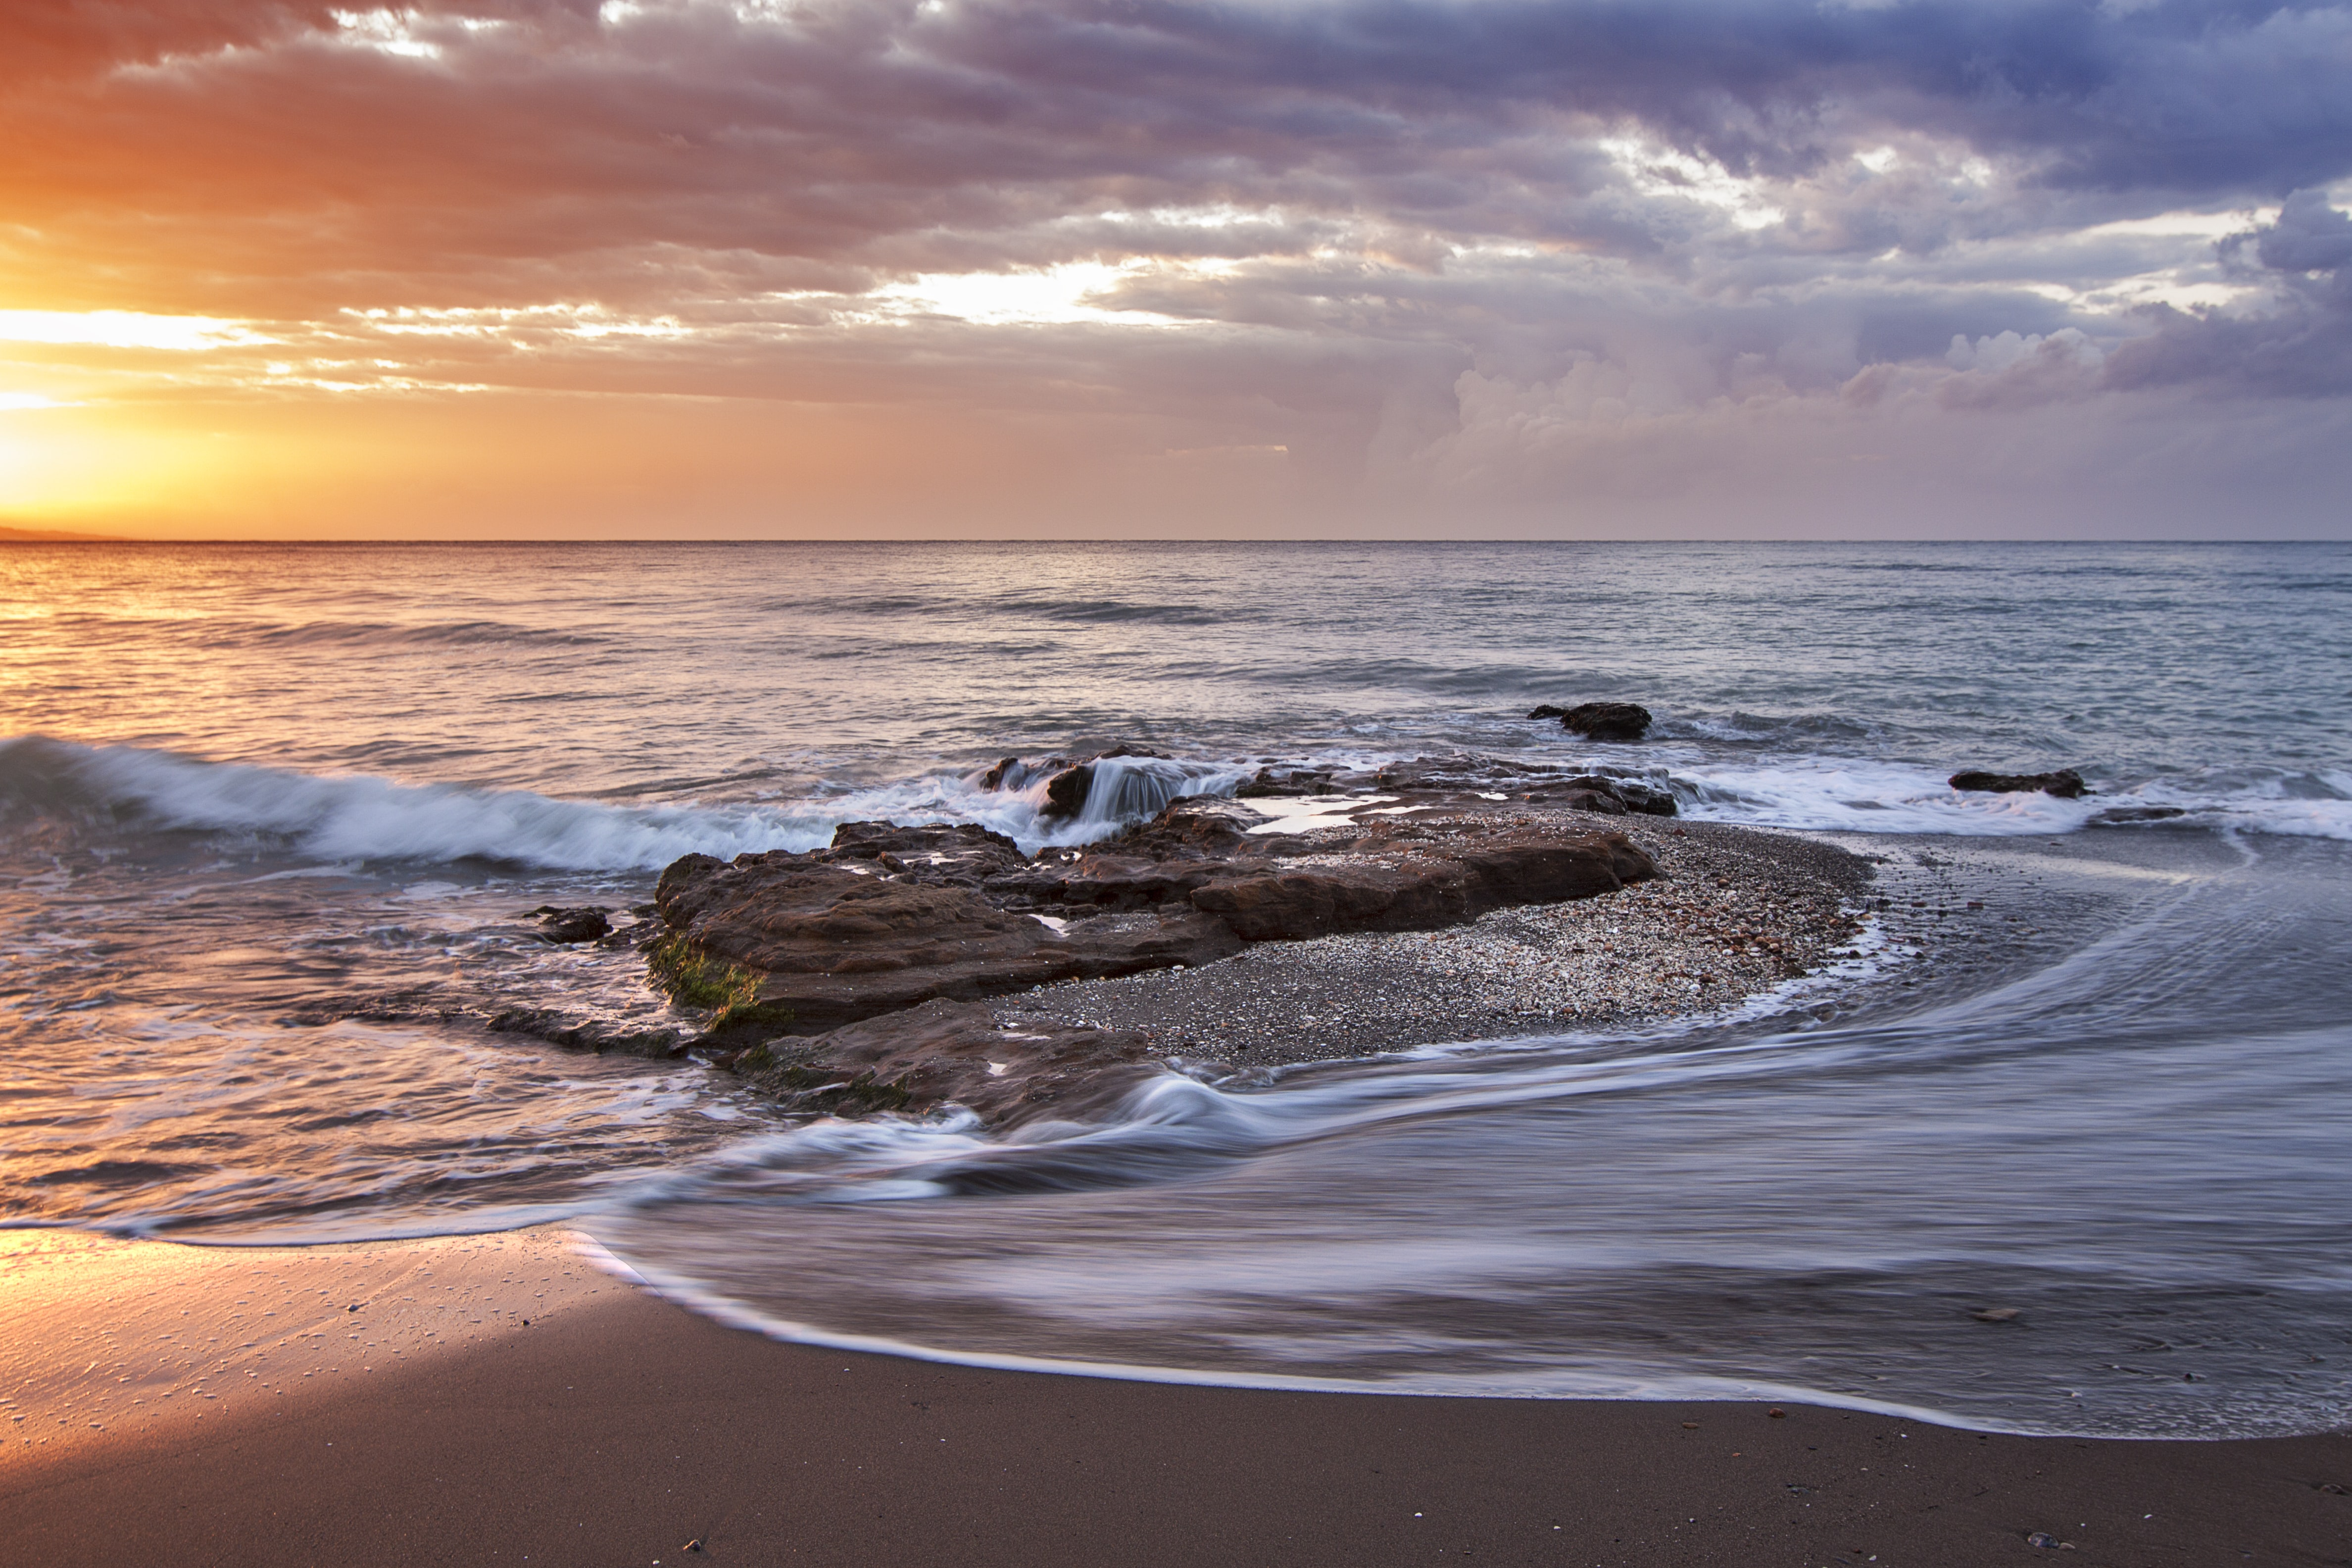 The ocean flowing onto the sandy beach under an orange, purple, and blue sky at sunset